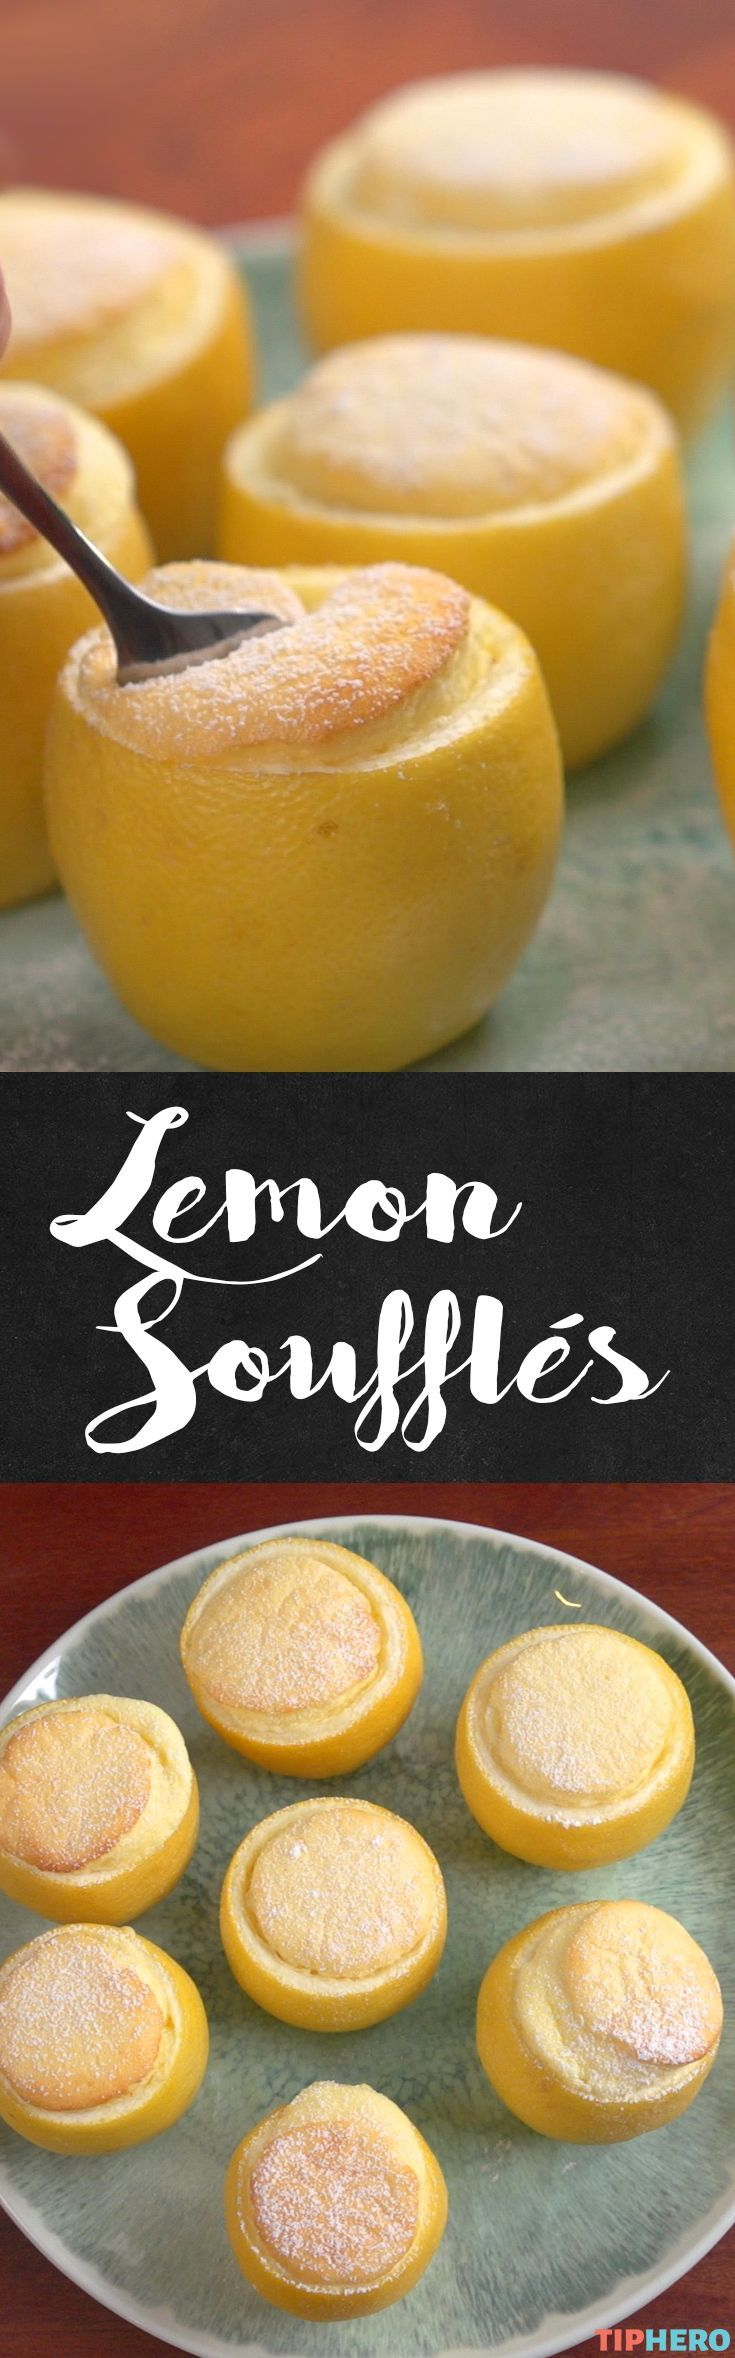 Lemon Soufflés Recipe  Love a light and airy soufflé— especially when it's lemon-flavored! The combination of creamy sweetness and just that touch of tart is irresistible. Click for recipe and how to video. #desserts #sweettreats